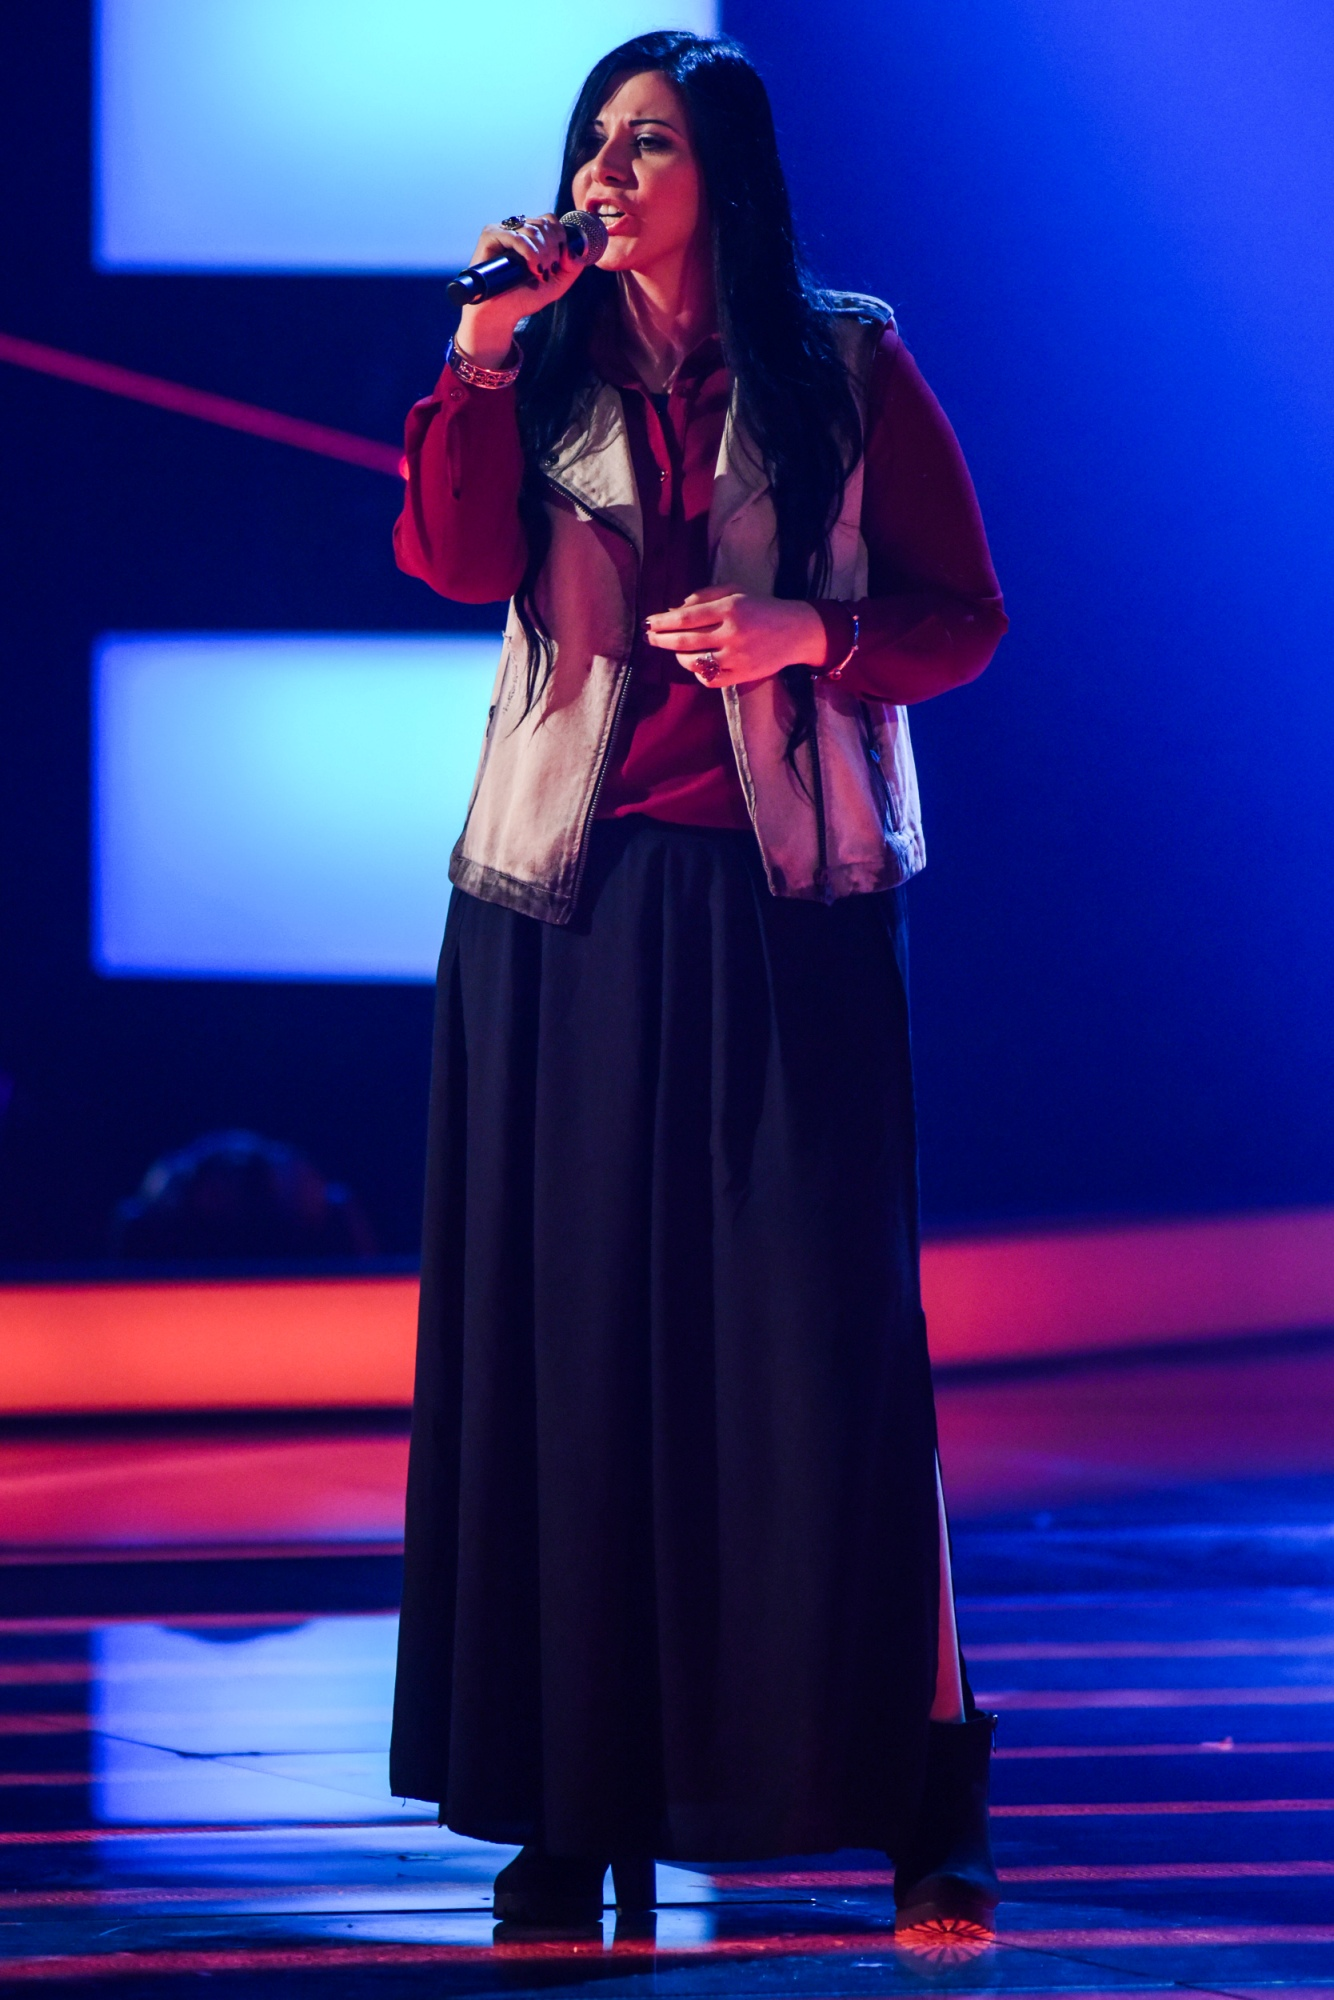 Rai2: Agata Aquilina di Ribera supera le audizioni di The Voice of Italy!